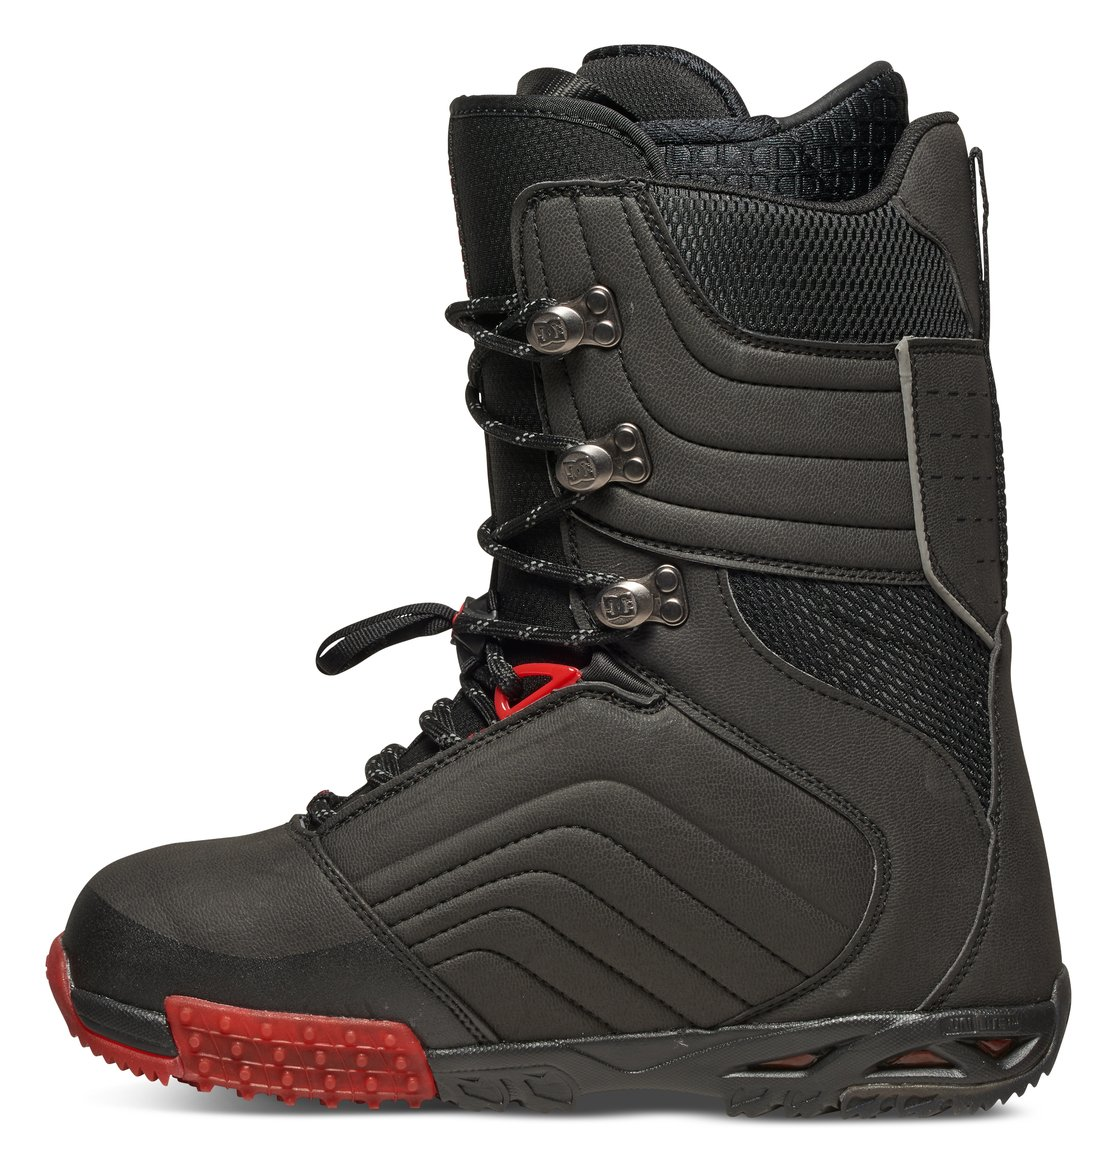 mens scendent snowboard boots adyo200033 dc shoes